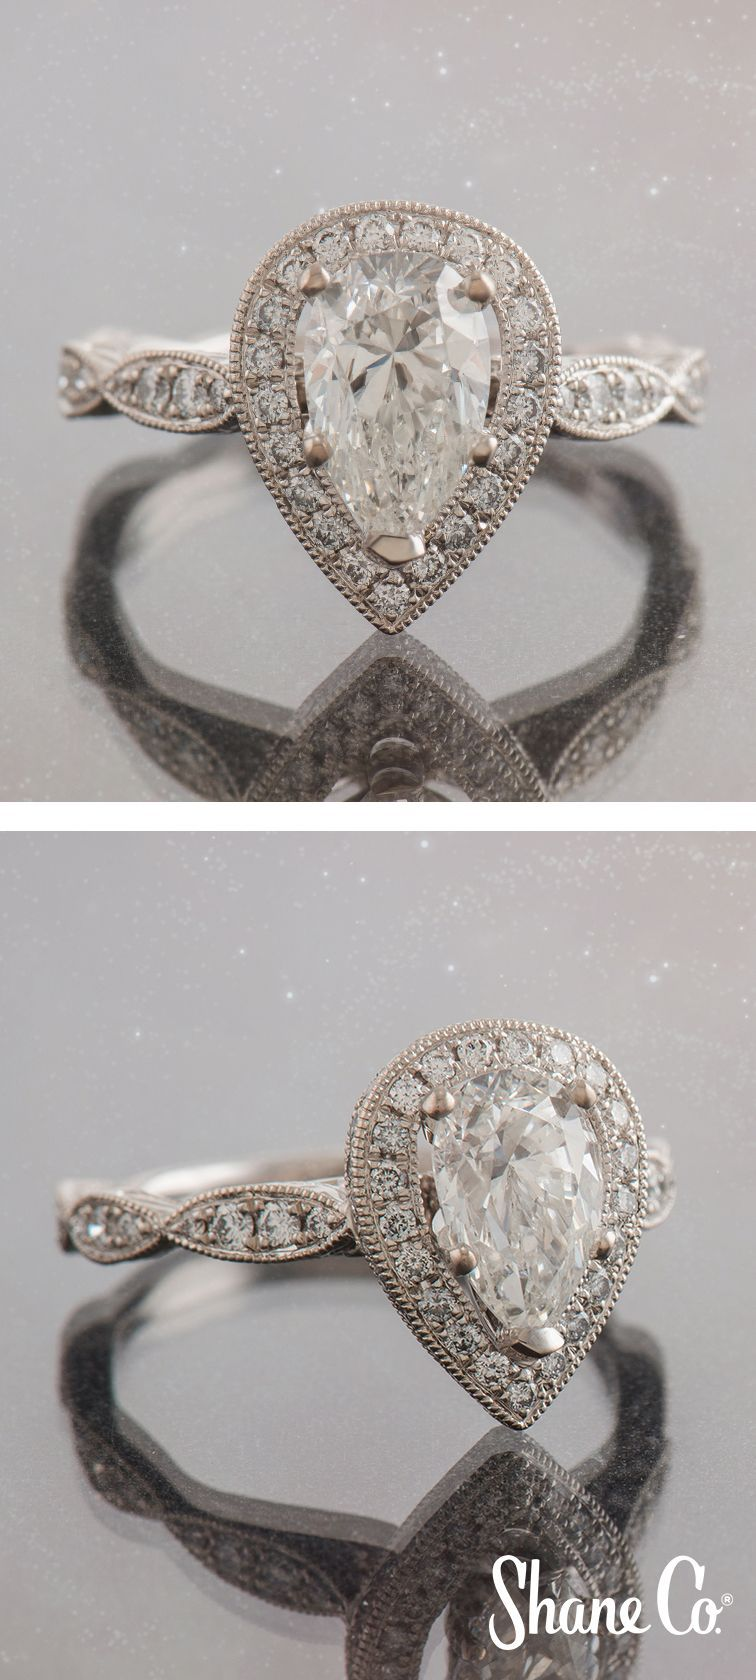 If You Love Vintage Inspired Engagement Rings Then Will Go Crazy Over This Shaneco